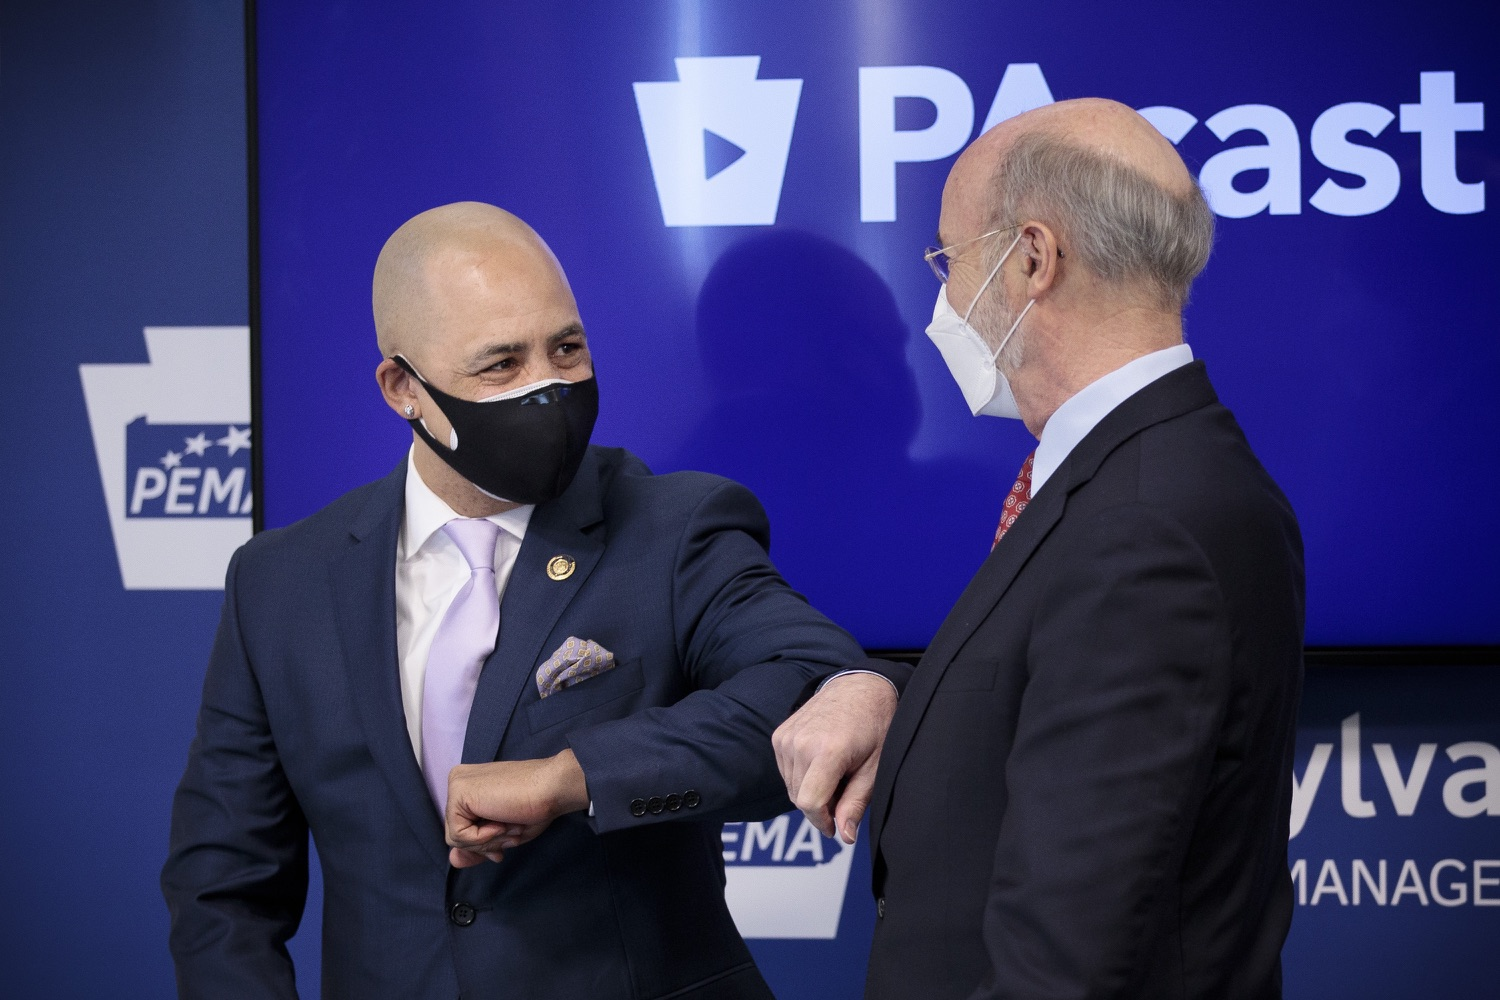 "<a href=""https://filesource.wostreaming.net/commonwealthofpa/photo/18512_gov_education_dz_05.jpg"" target=""_blank"">⇣ Download Photo<br></a>Pennsylvania Governor Tom Wolf greeting Pennsylvania Representative Chris Rabb before the press conference.  Continuing to make the future of Pennsylvanias students a priority, Governor Tom Wolfs 2021 agenda makes a historic $1.3 billion investment in public schools and creates fairness in education funding, while cutting taxes for working families and businesses. Harrisburg, PA  February 4, 2021"